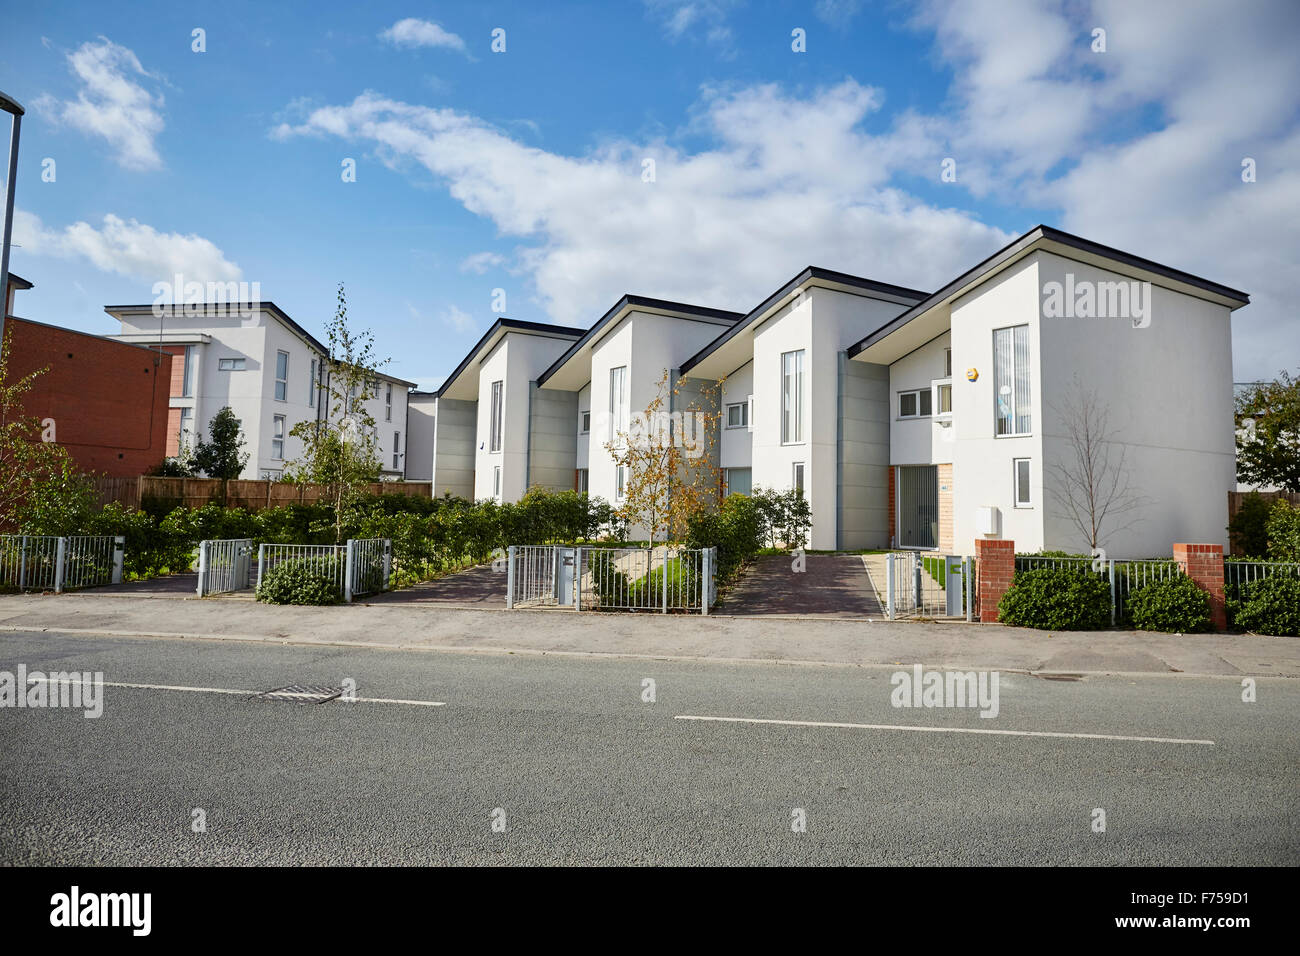 Modern houses in manchester uk development house home place living environment building street suburban suburbia suburbs town v